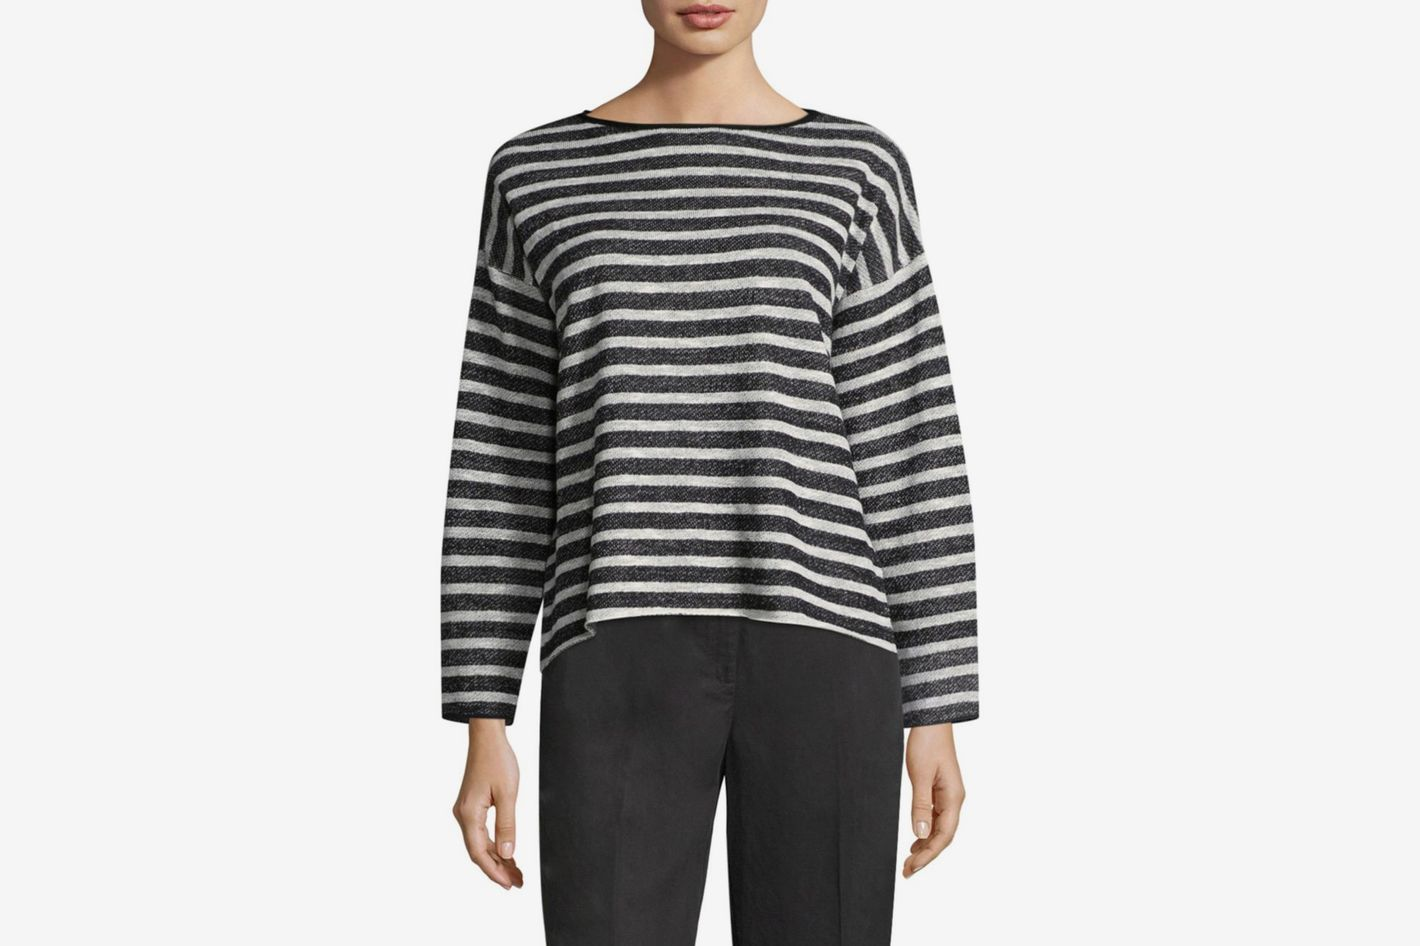 Eileen Fisher Striped Sweater